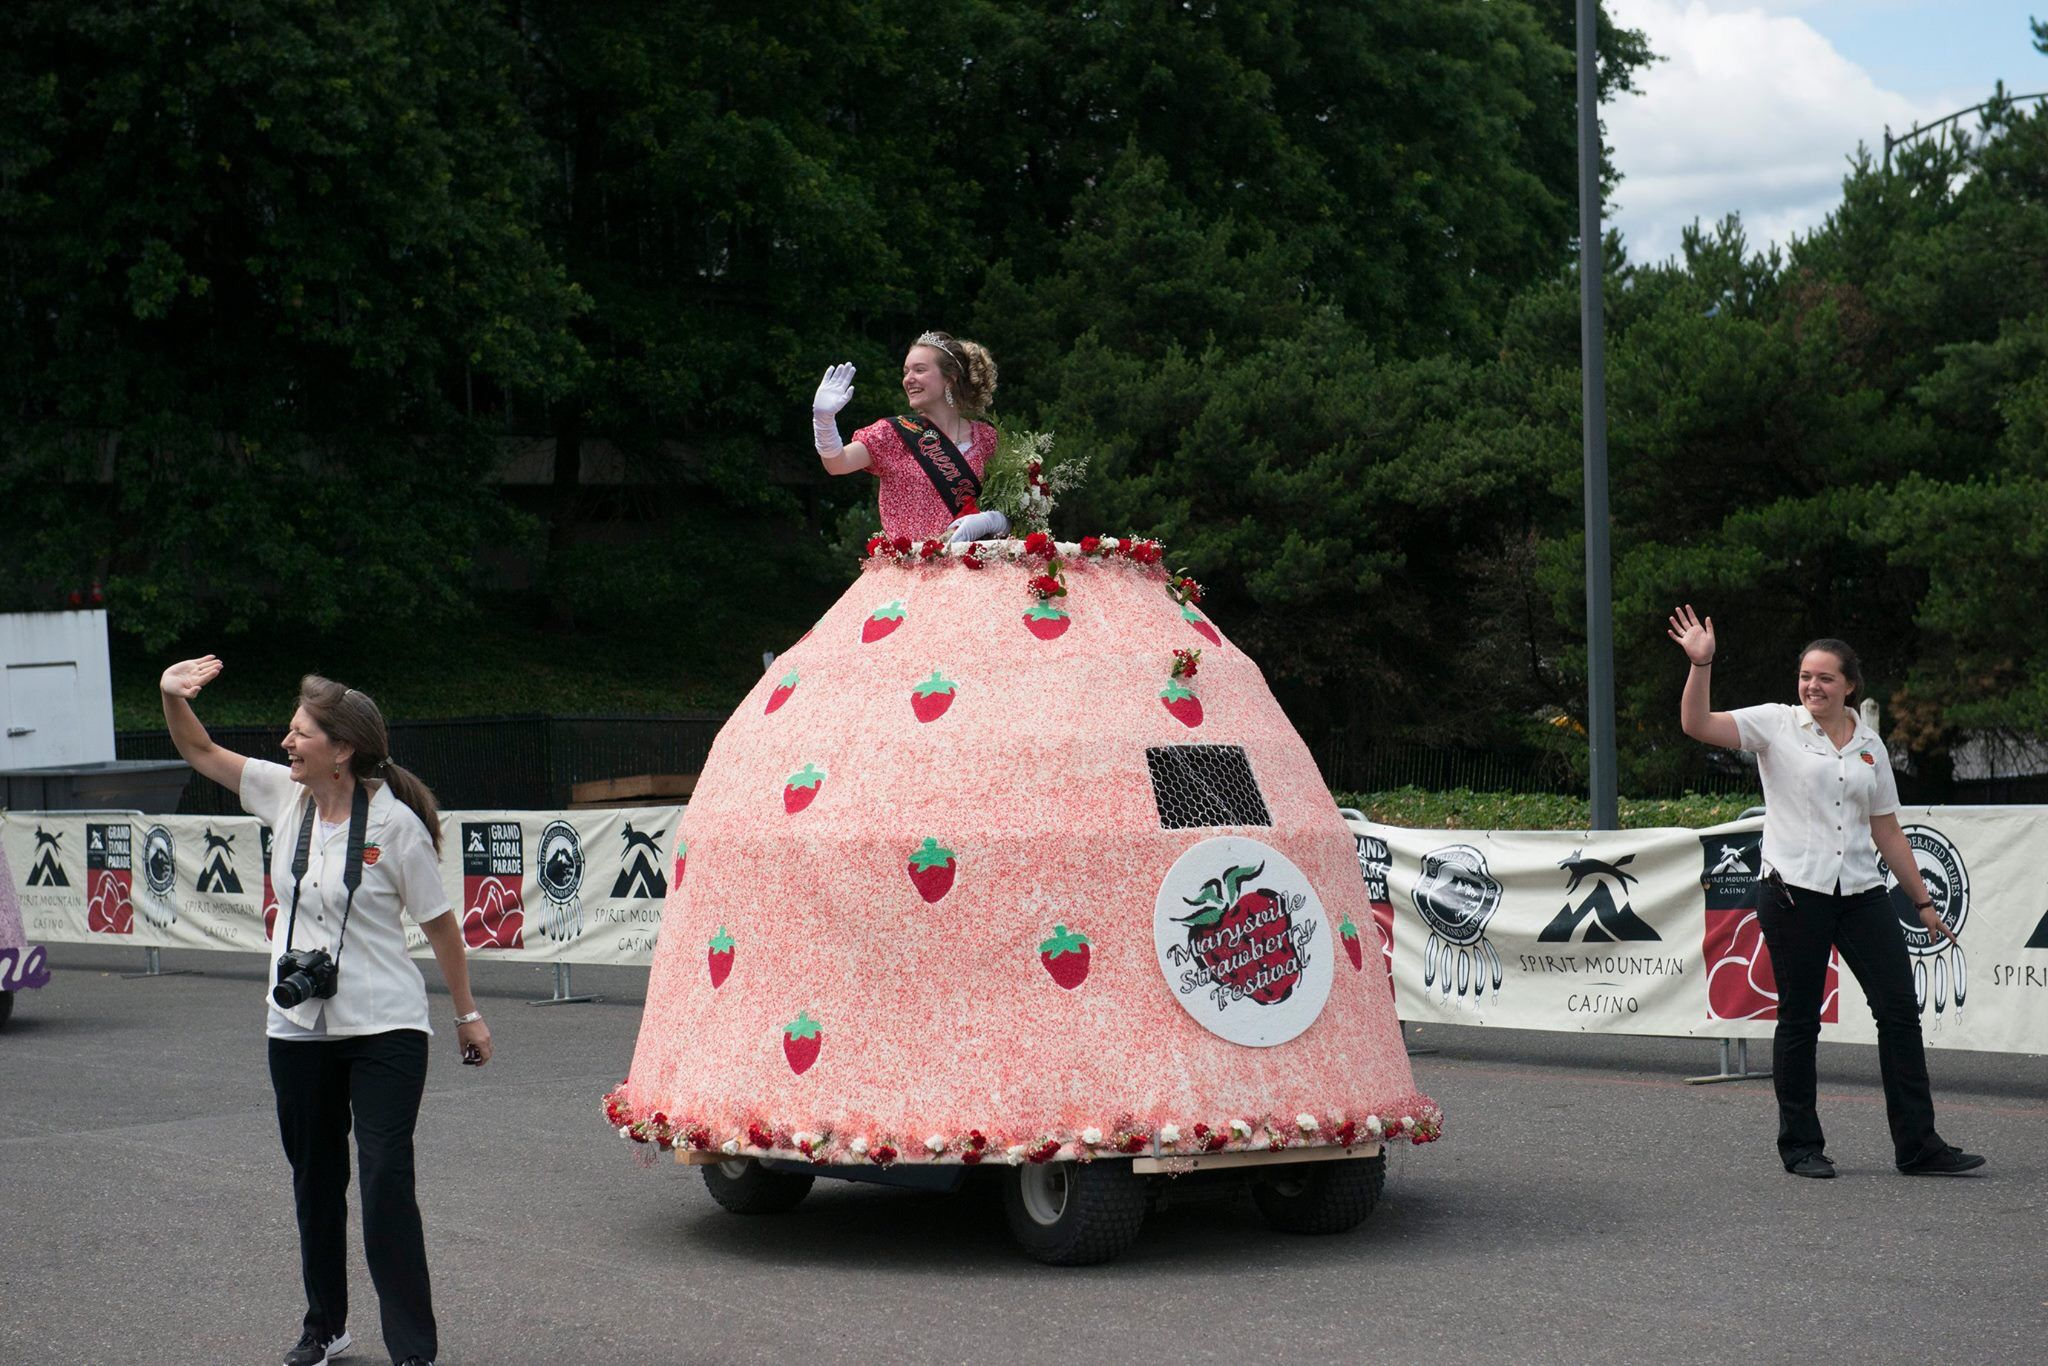 Marysville Strawberry Festival Mini Float Designed By Carla Stenberg For